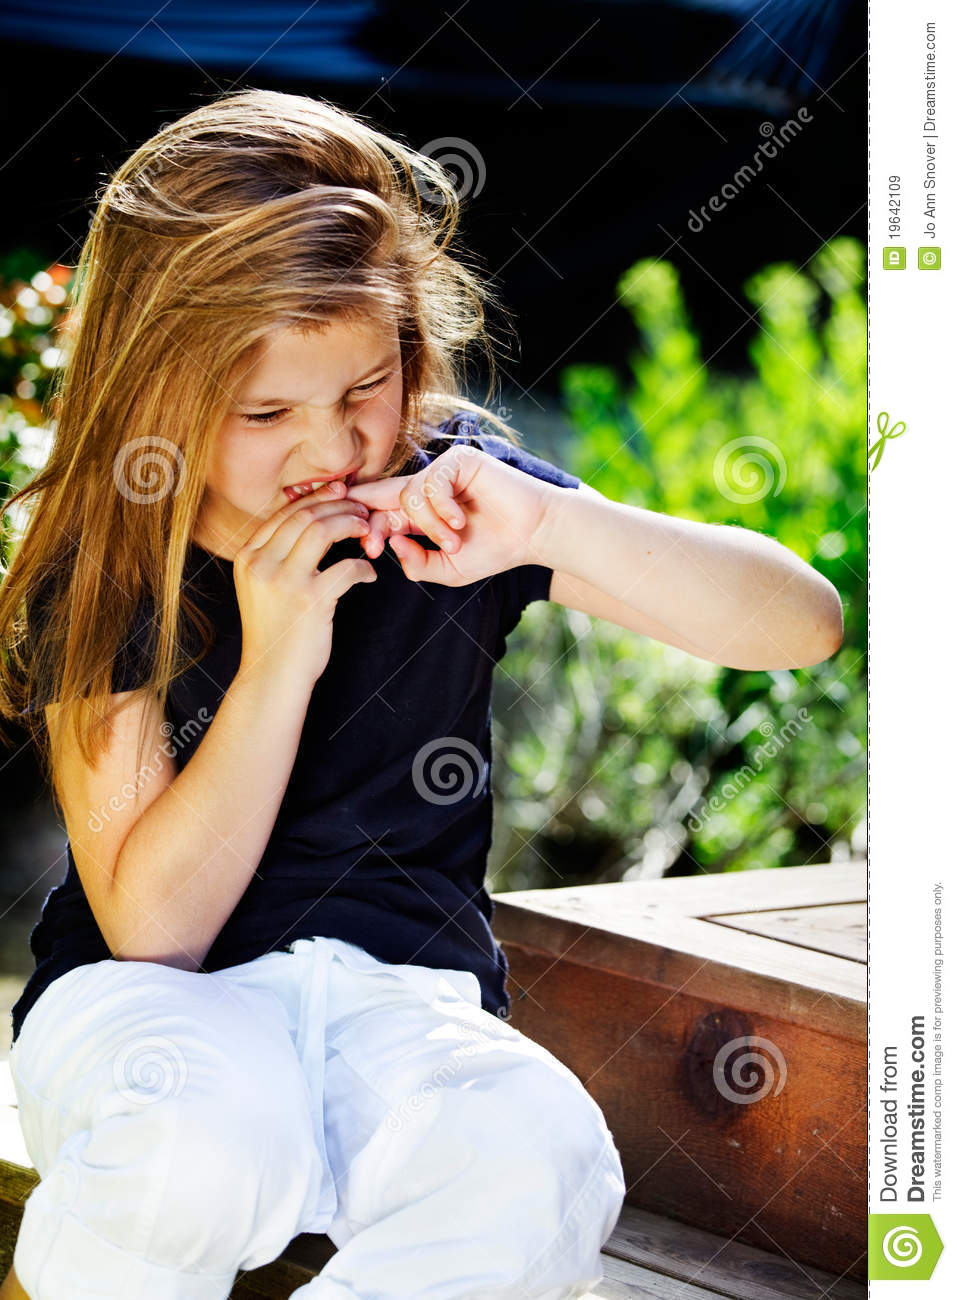 Girl Biting Nails Royalty Free Stock Images - Image: 19642109